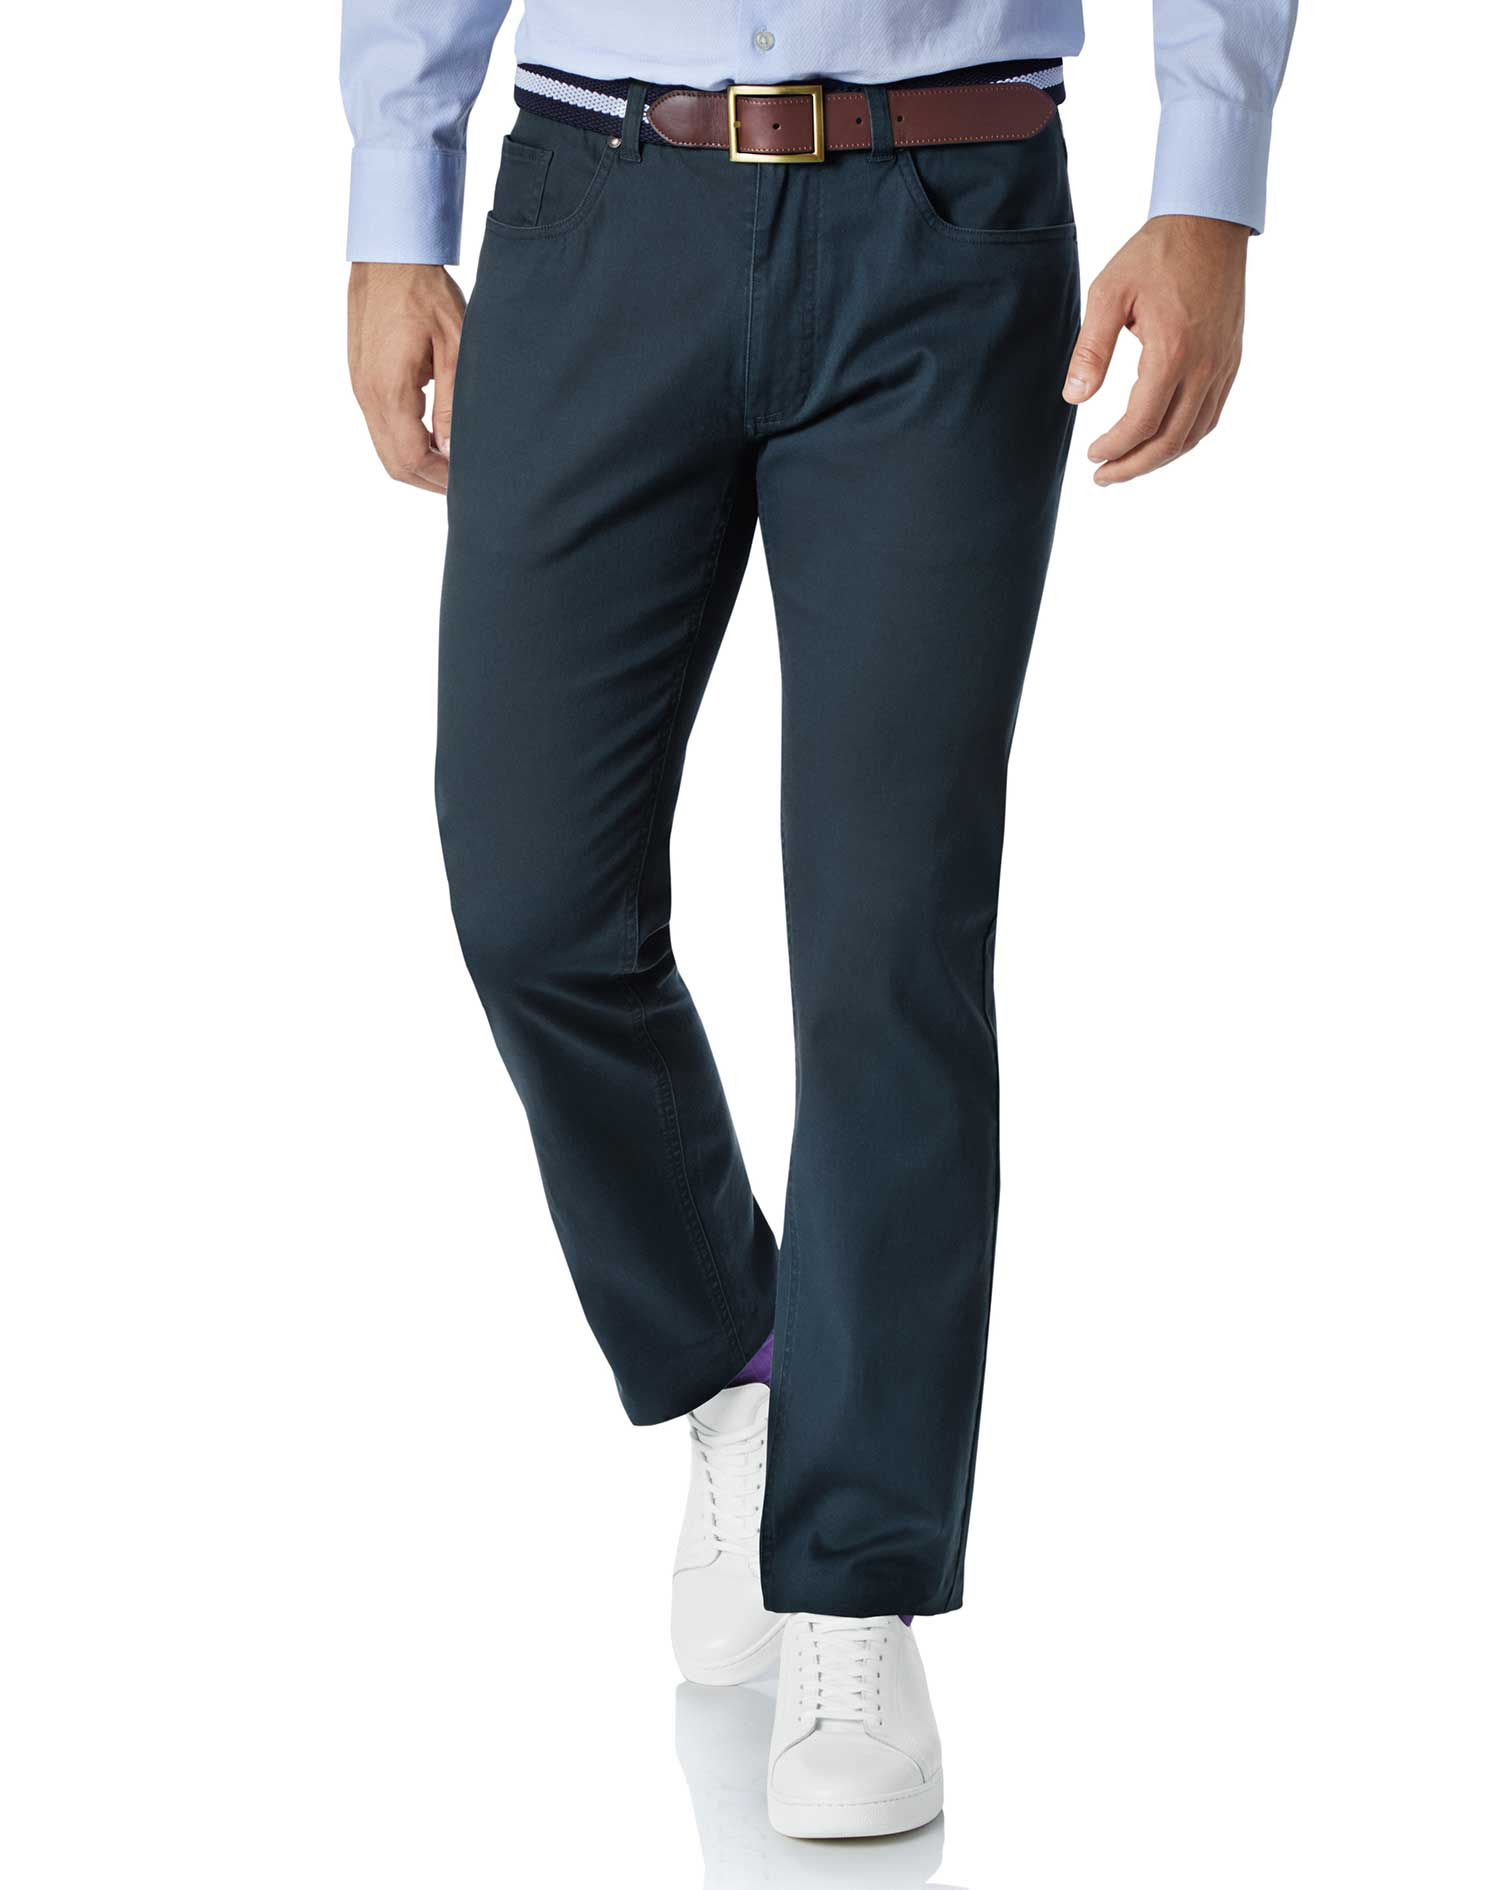 Teal Slim Fit 5 Pocket Trousers Size W30 L30 by Charles Tyrwhitt